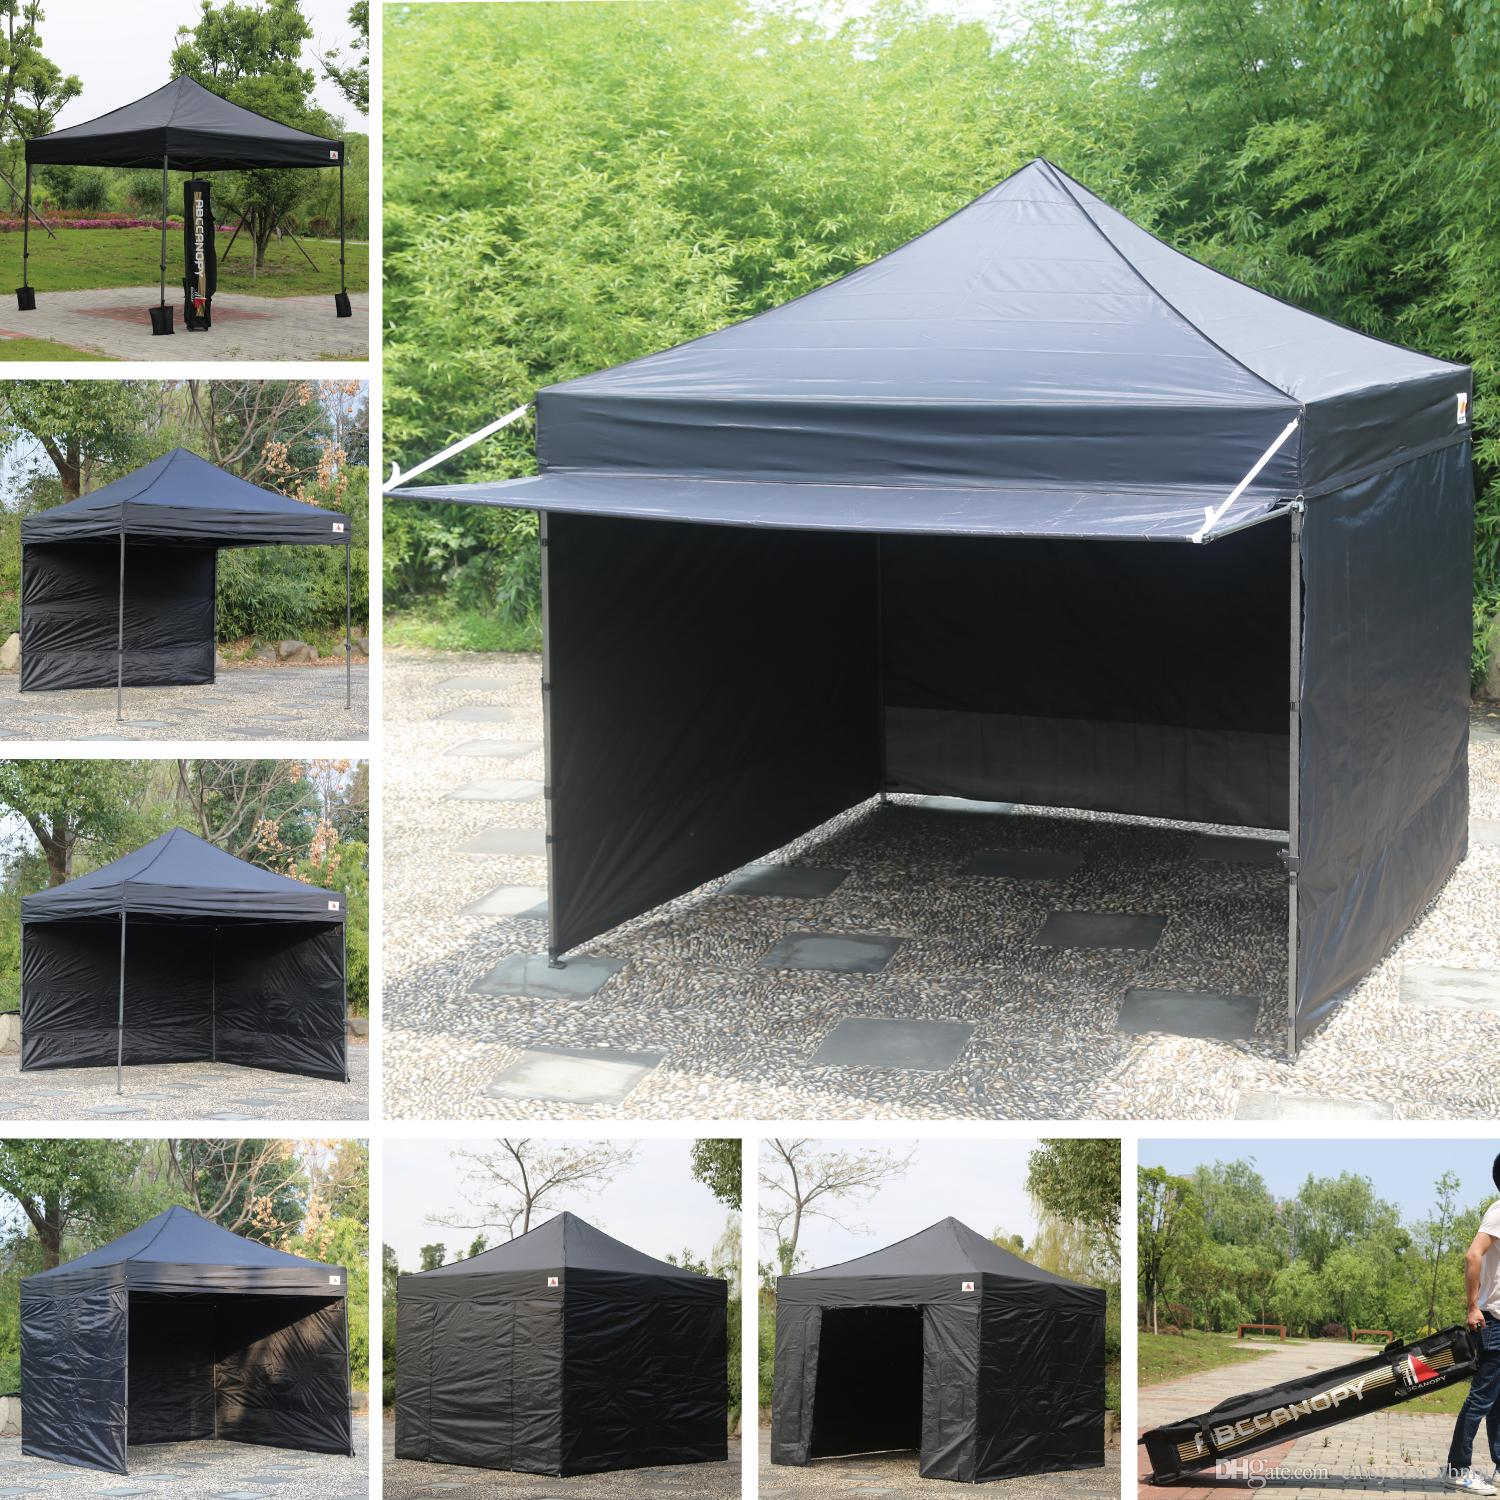 2020 10x10 AbcCanopy Easy Pop Up Canopy Tent Instant ...